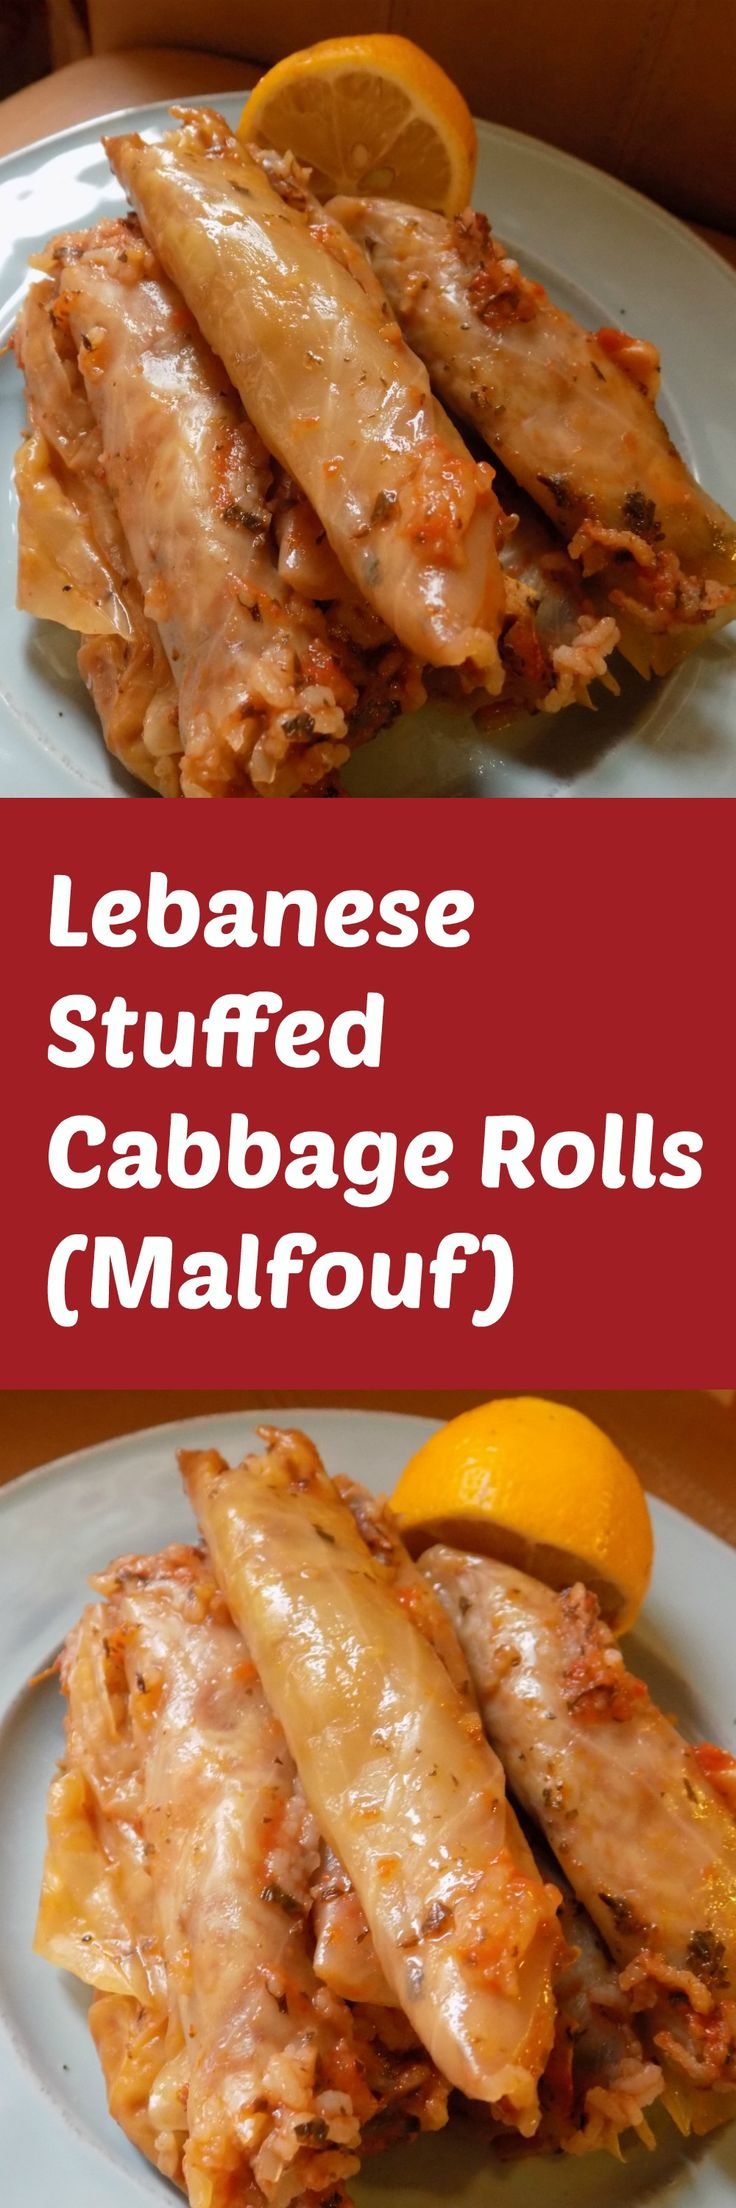 Delicious Lebanese stuffed cabbage rolls aka Malfouf. Even cabbage haters will be converted. #malfouf #lebaneserecipes